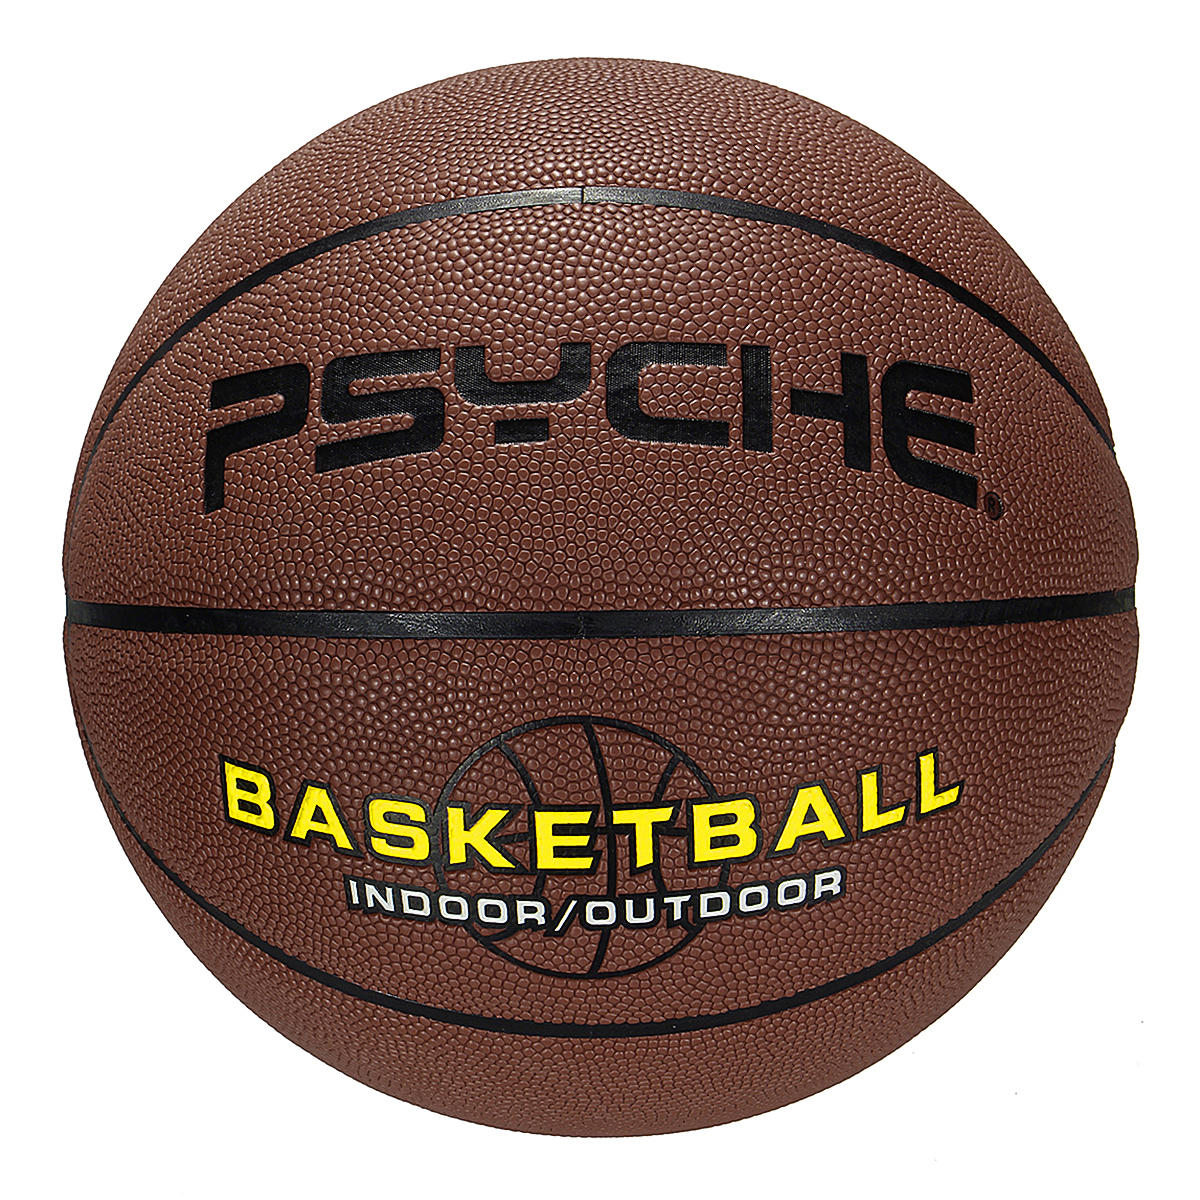 Official Size 7 PU Non slip Basketball Basquete Balls Game Sports Training Equipment FIBA Use GG7 GG7X GF7X - 2